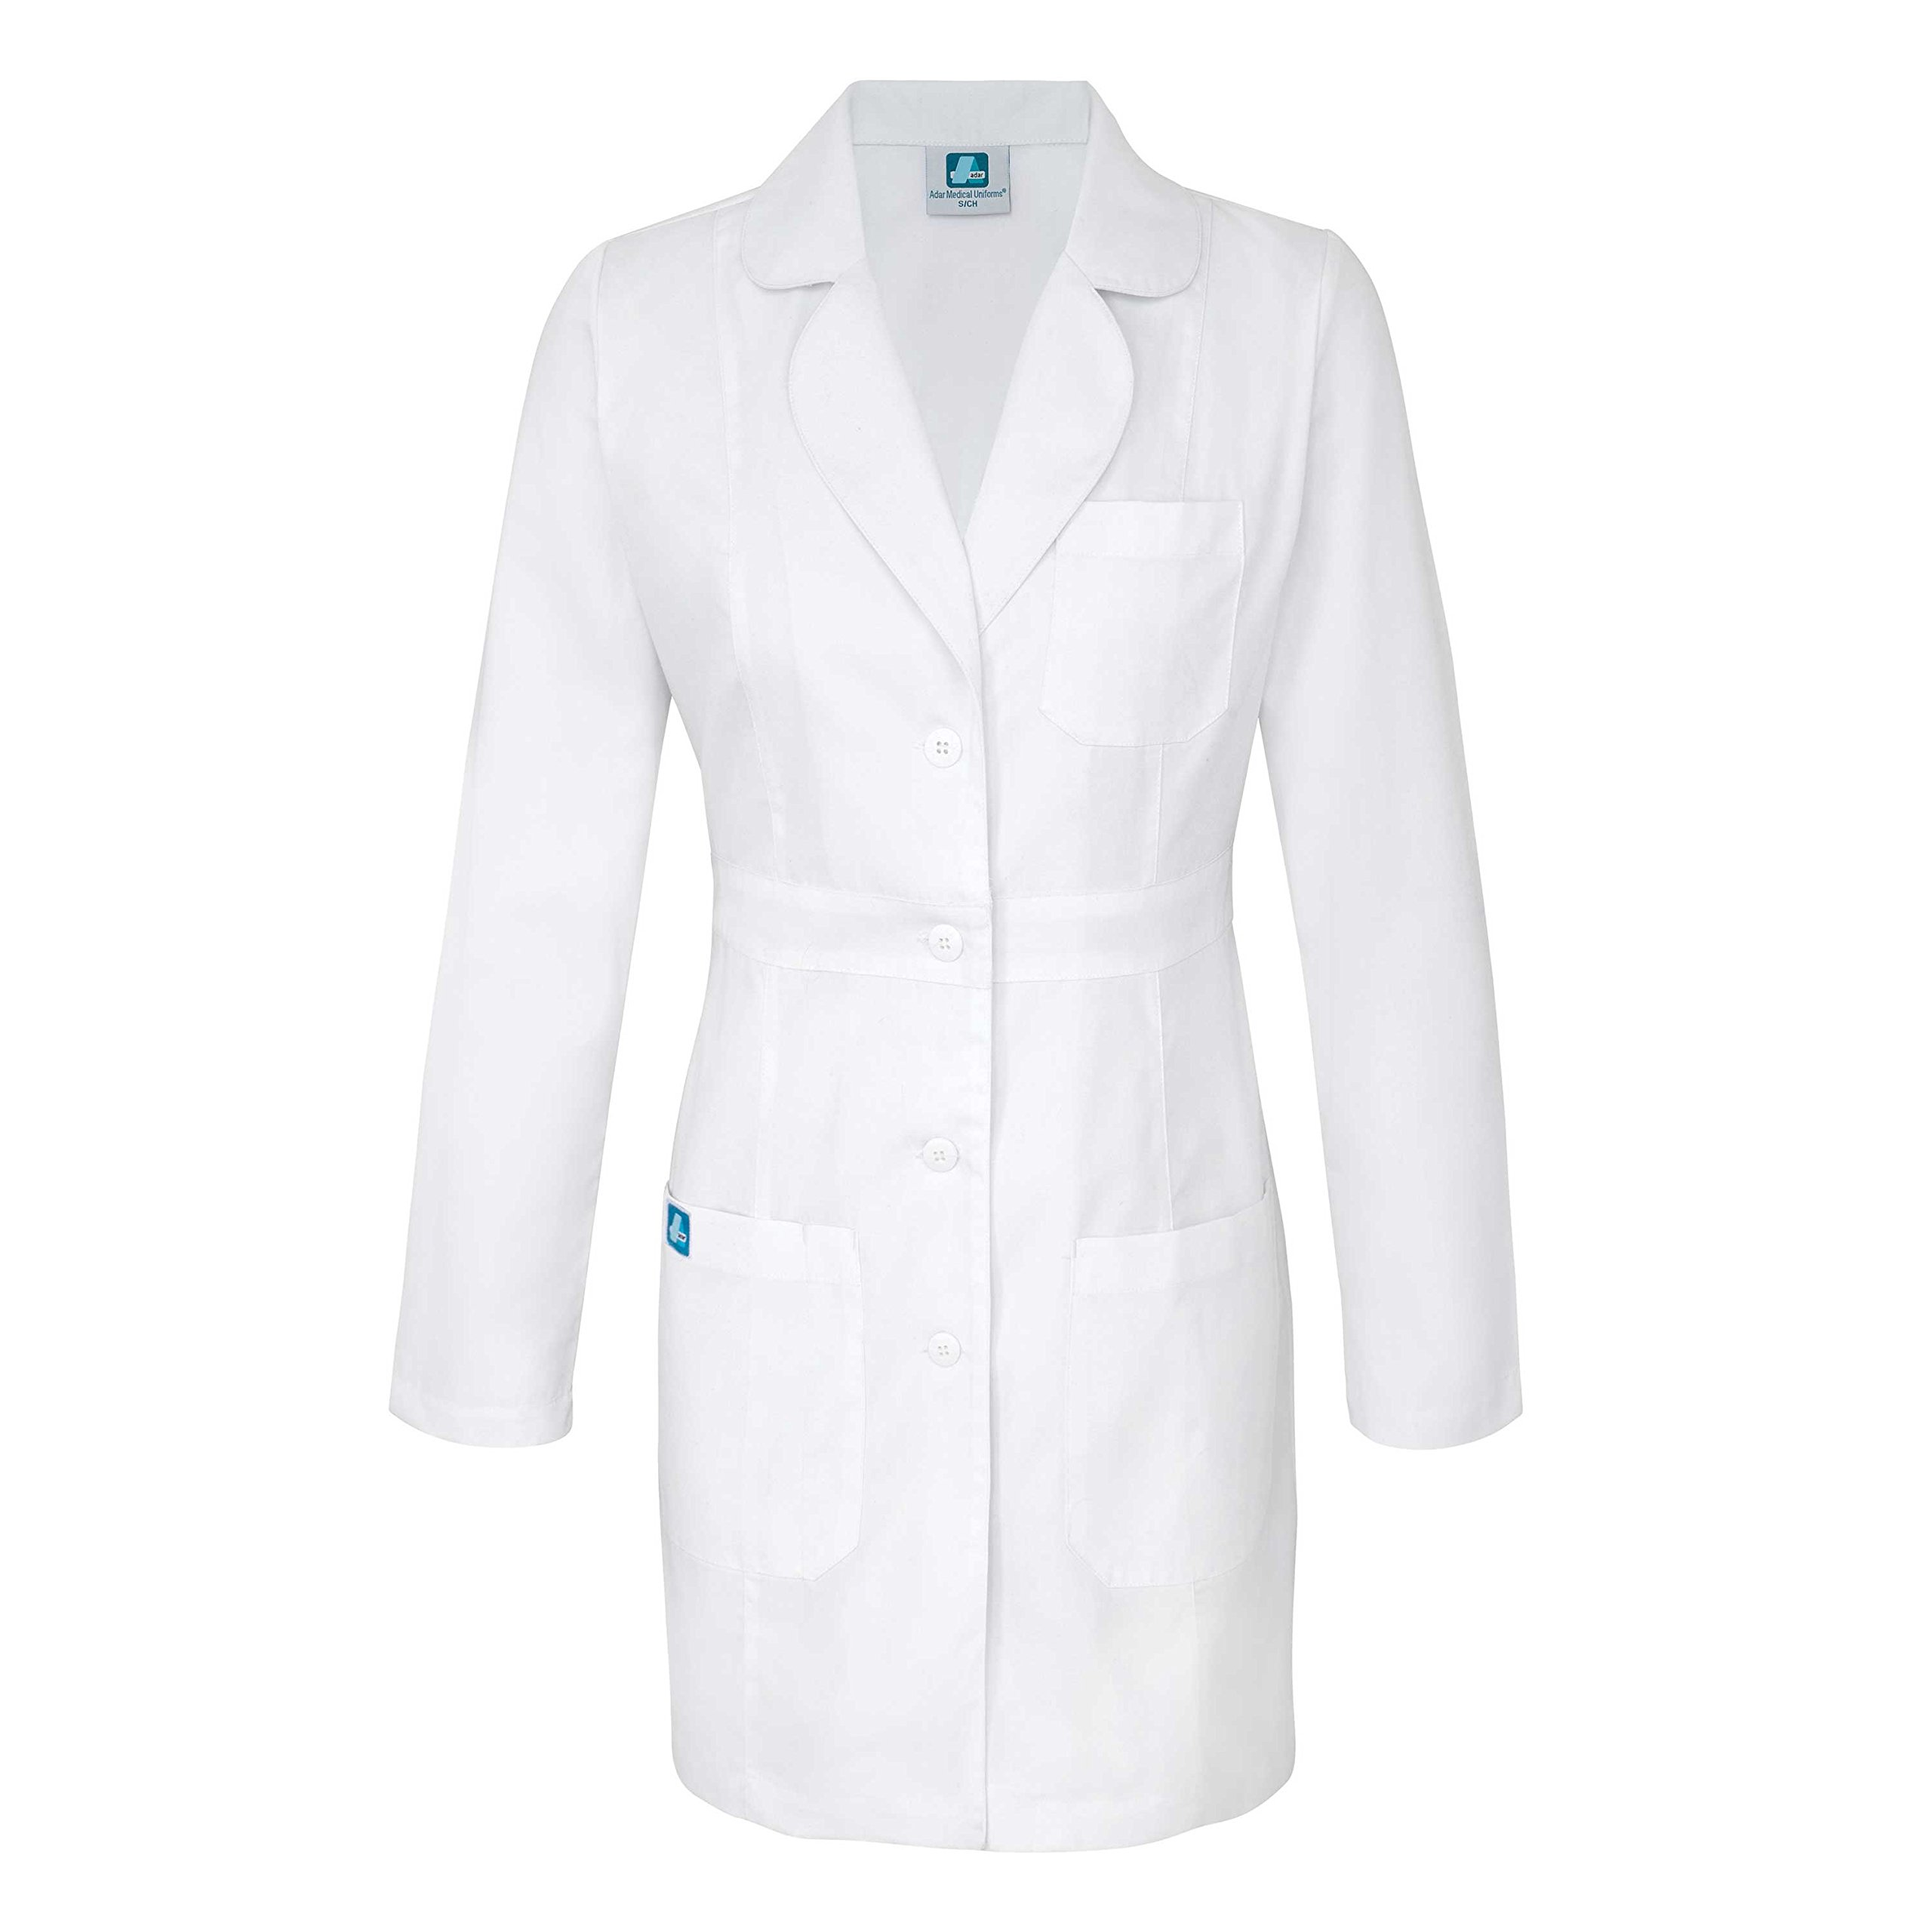 Adar Universal Women's 33'' Adjustable Belt Lab Coat - 2817 - White - S